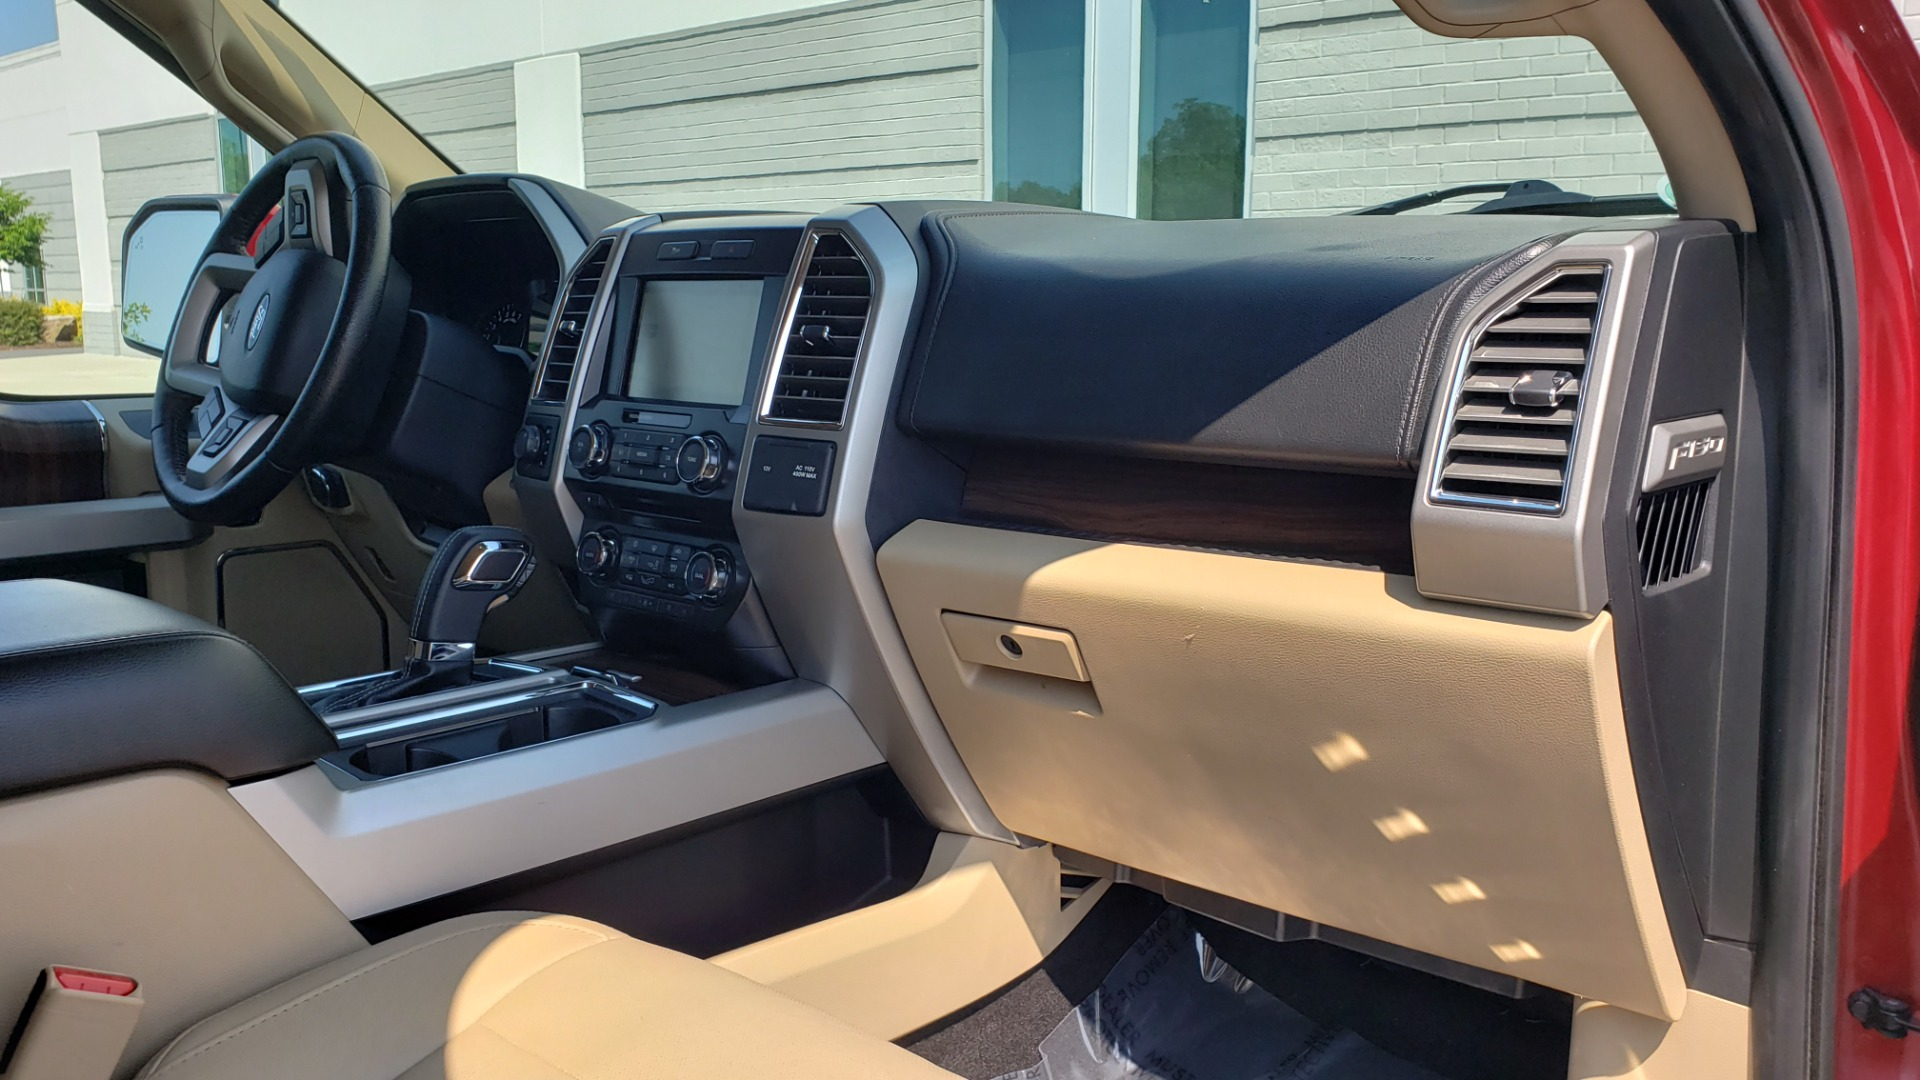 Used 2015 Ford F-150 LARIAT 4X4 SUPERCREW / 5.0L V8 / AUTO / NAV / SUNROOF / REARVIEW for sale $33,995 at Formula Imports in Charlotte NC 28227 73